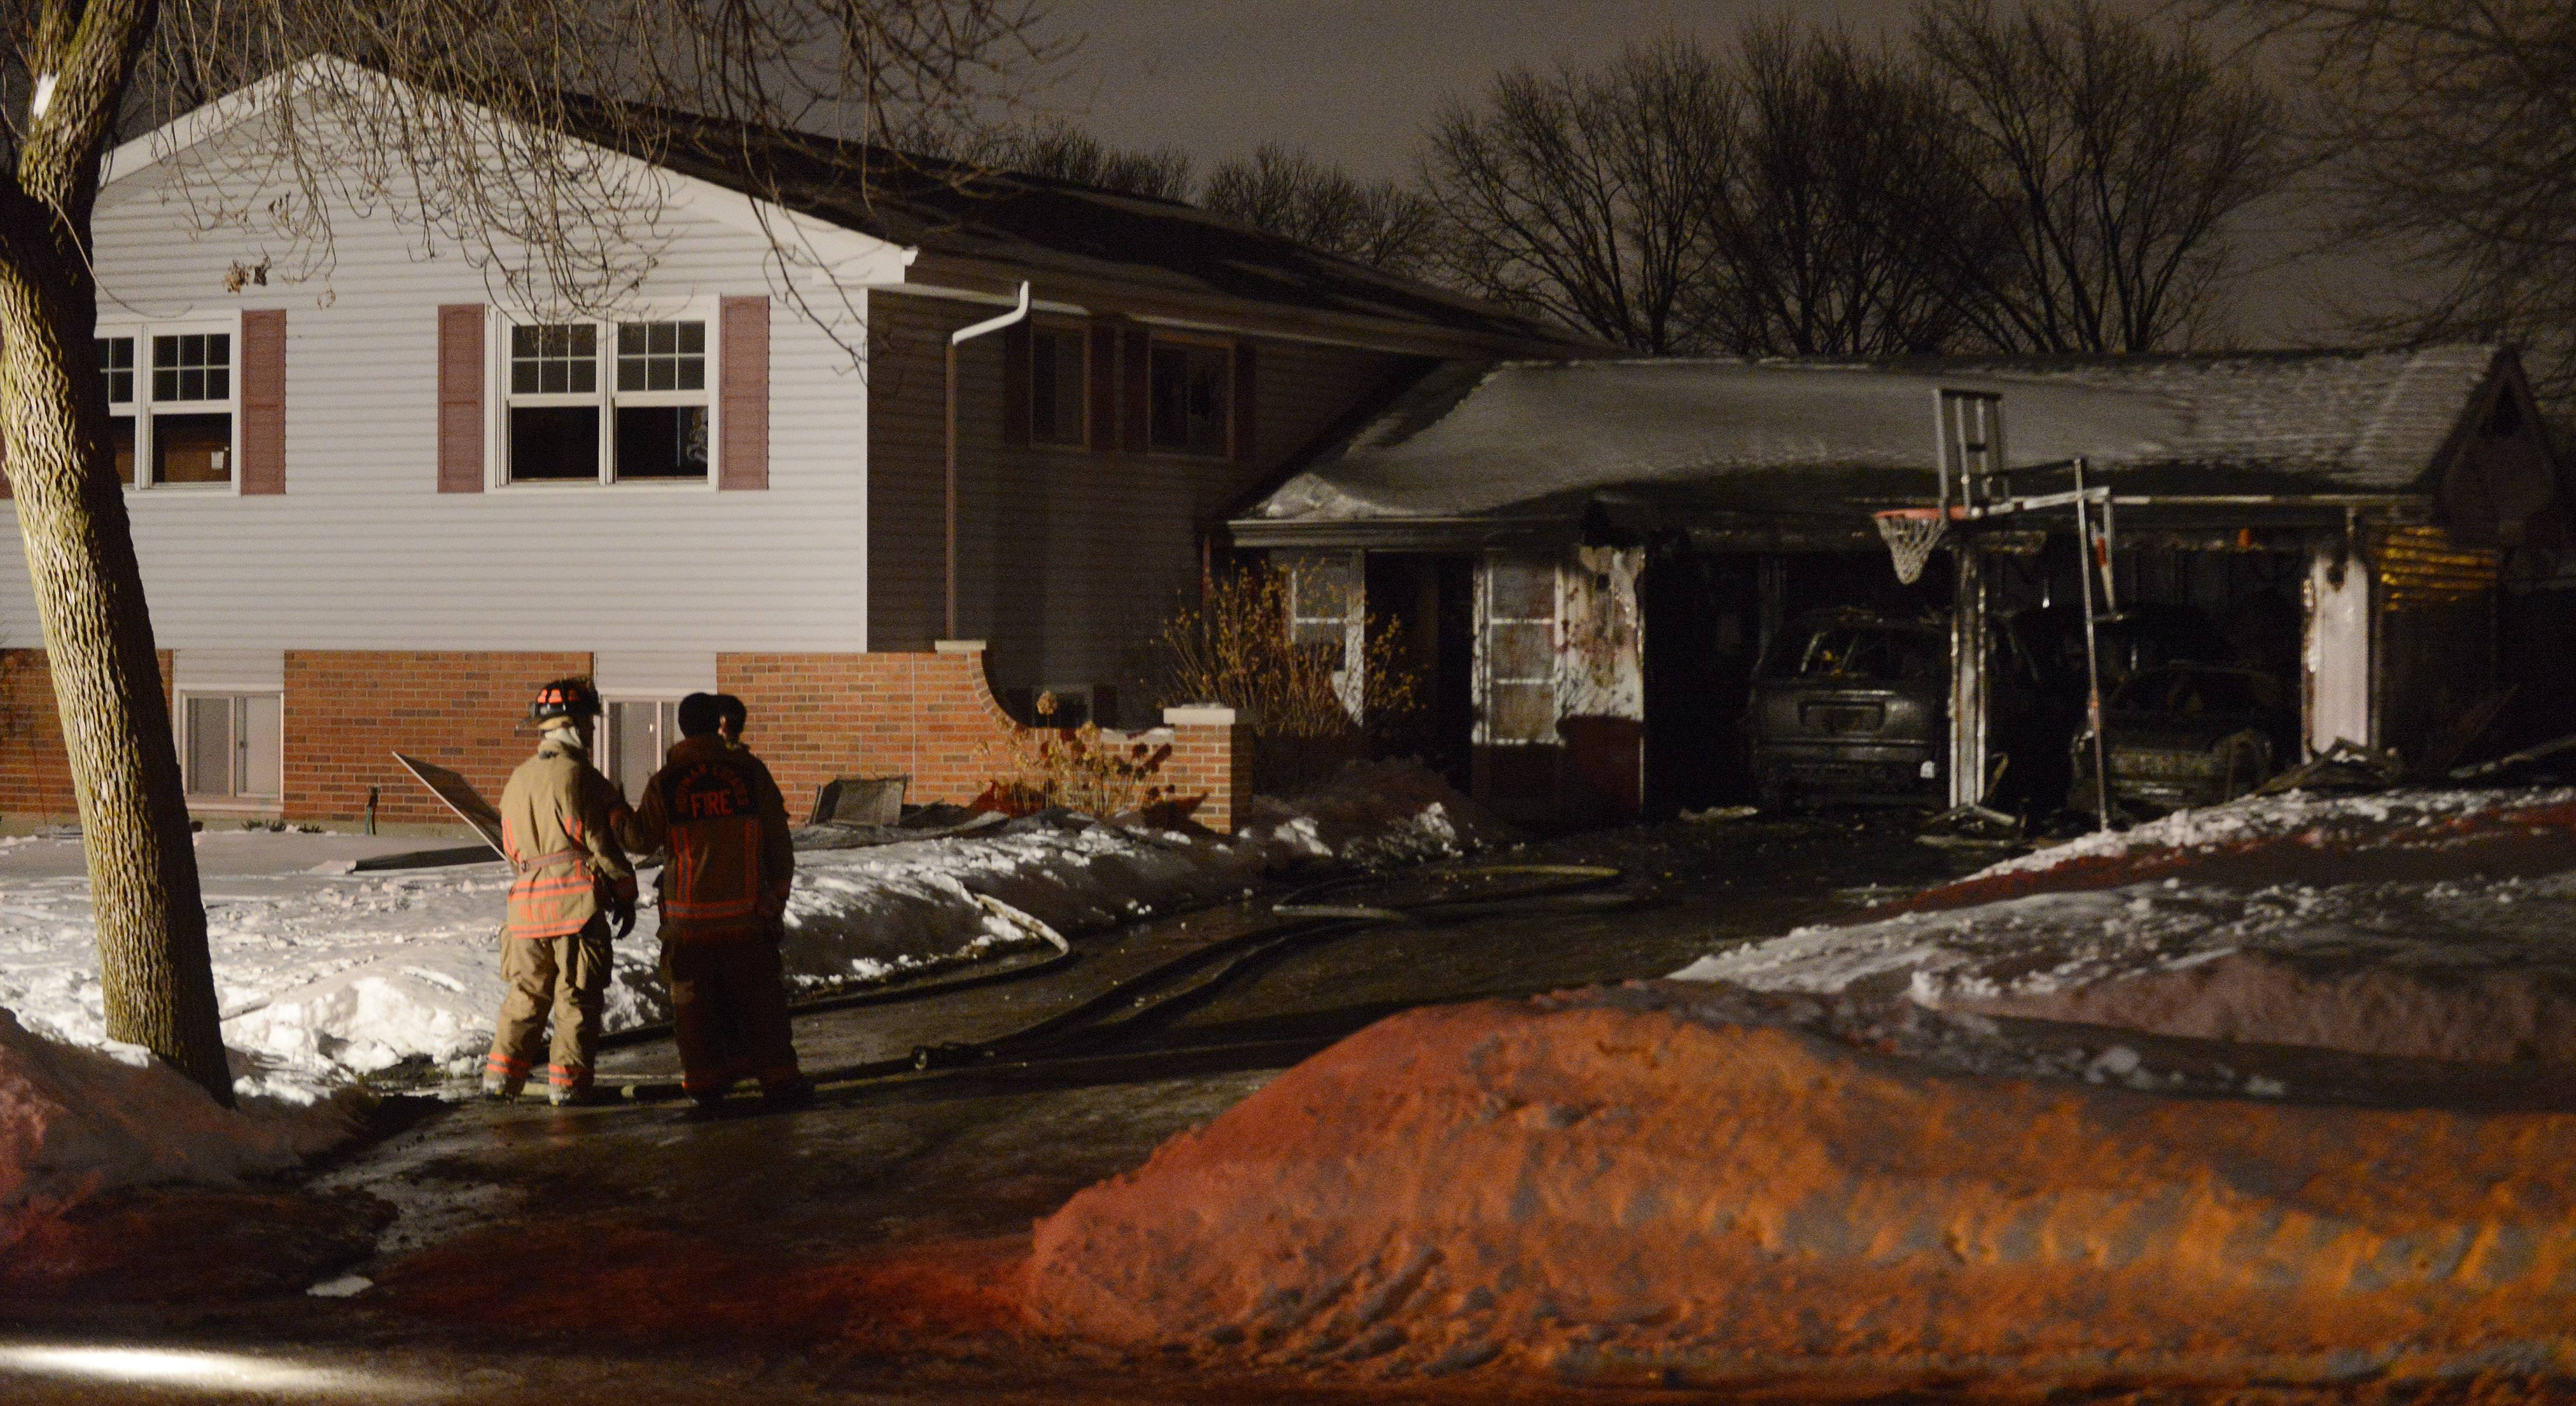 A home on Glen Lane in Hoffman Estates was severely damaged by fire Tuesday evening. Much of the damage included a two-car garage that had two vehicles inside.